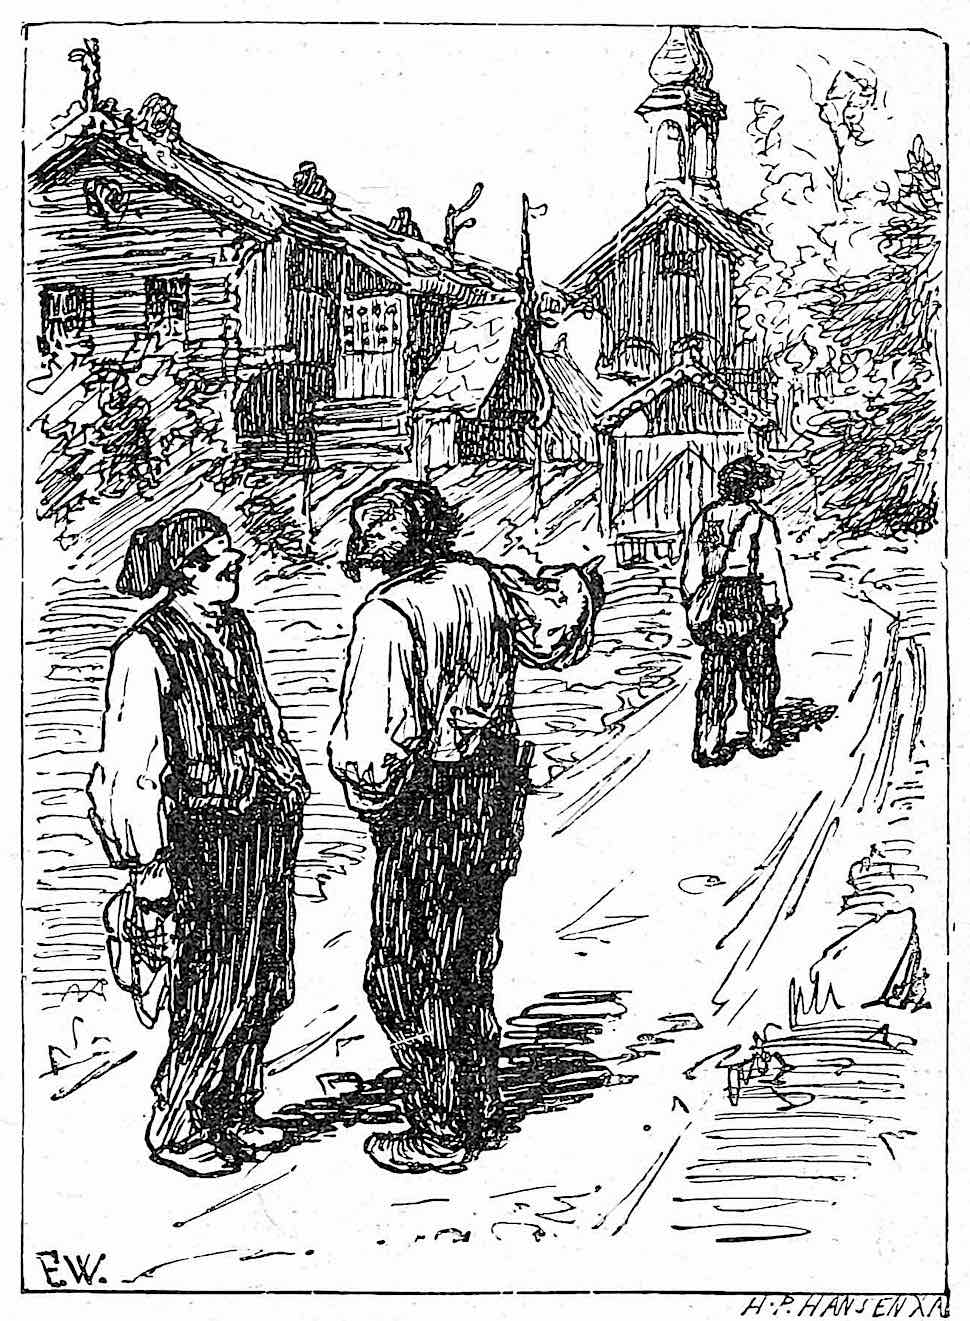 a drawing by Peter Christen Asbjørnsen 1909, of two men laughing and criticizing a third man